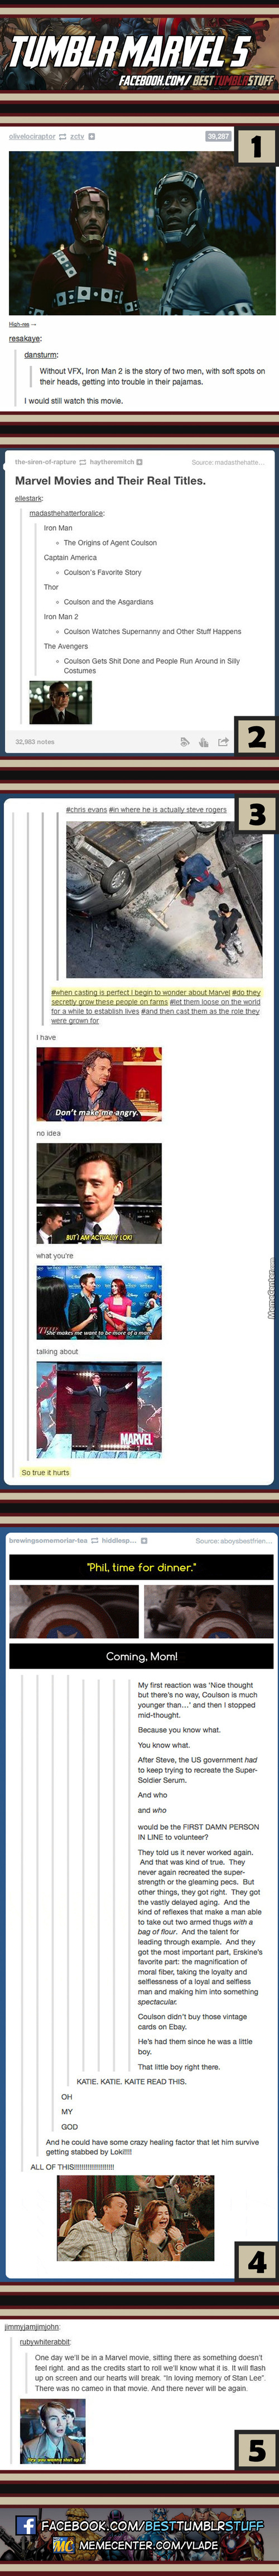 Tumblr Marvel #5